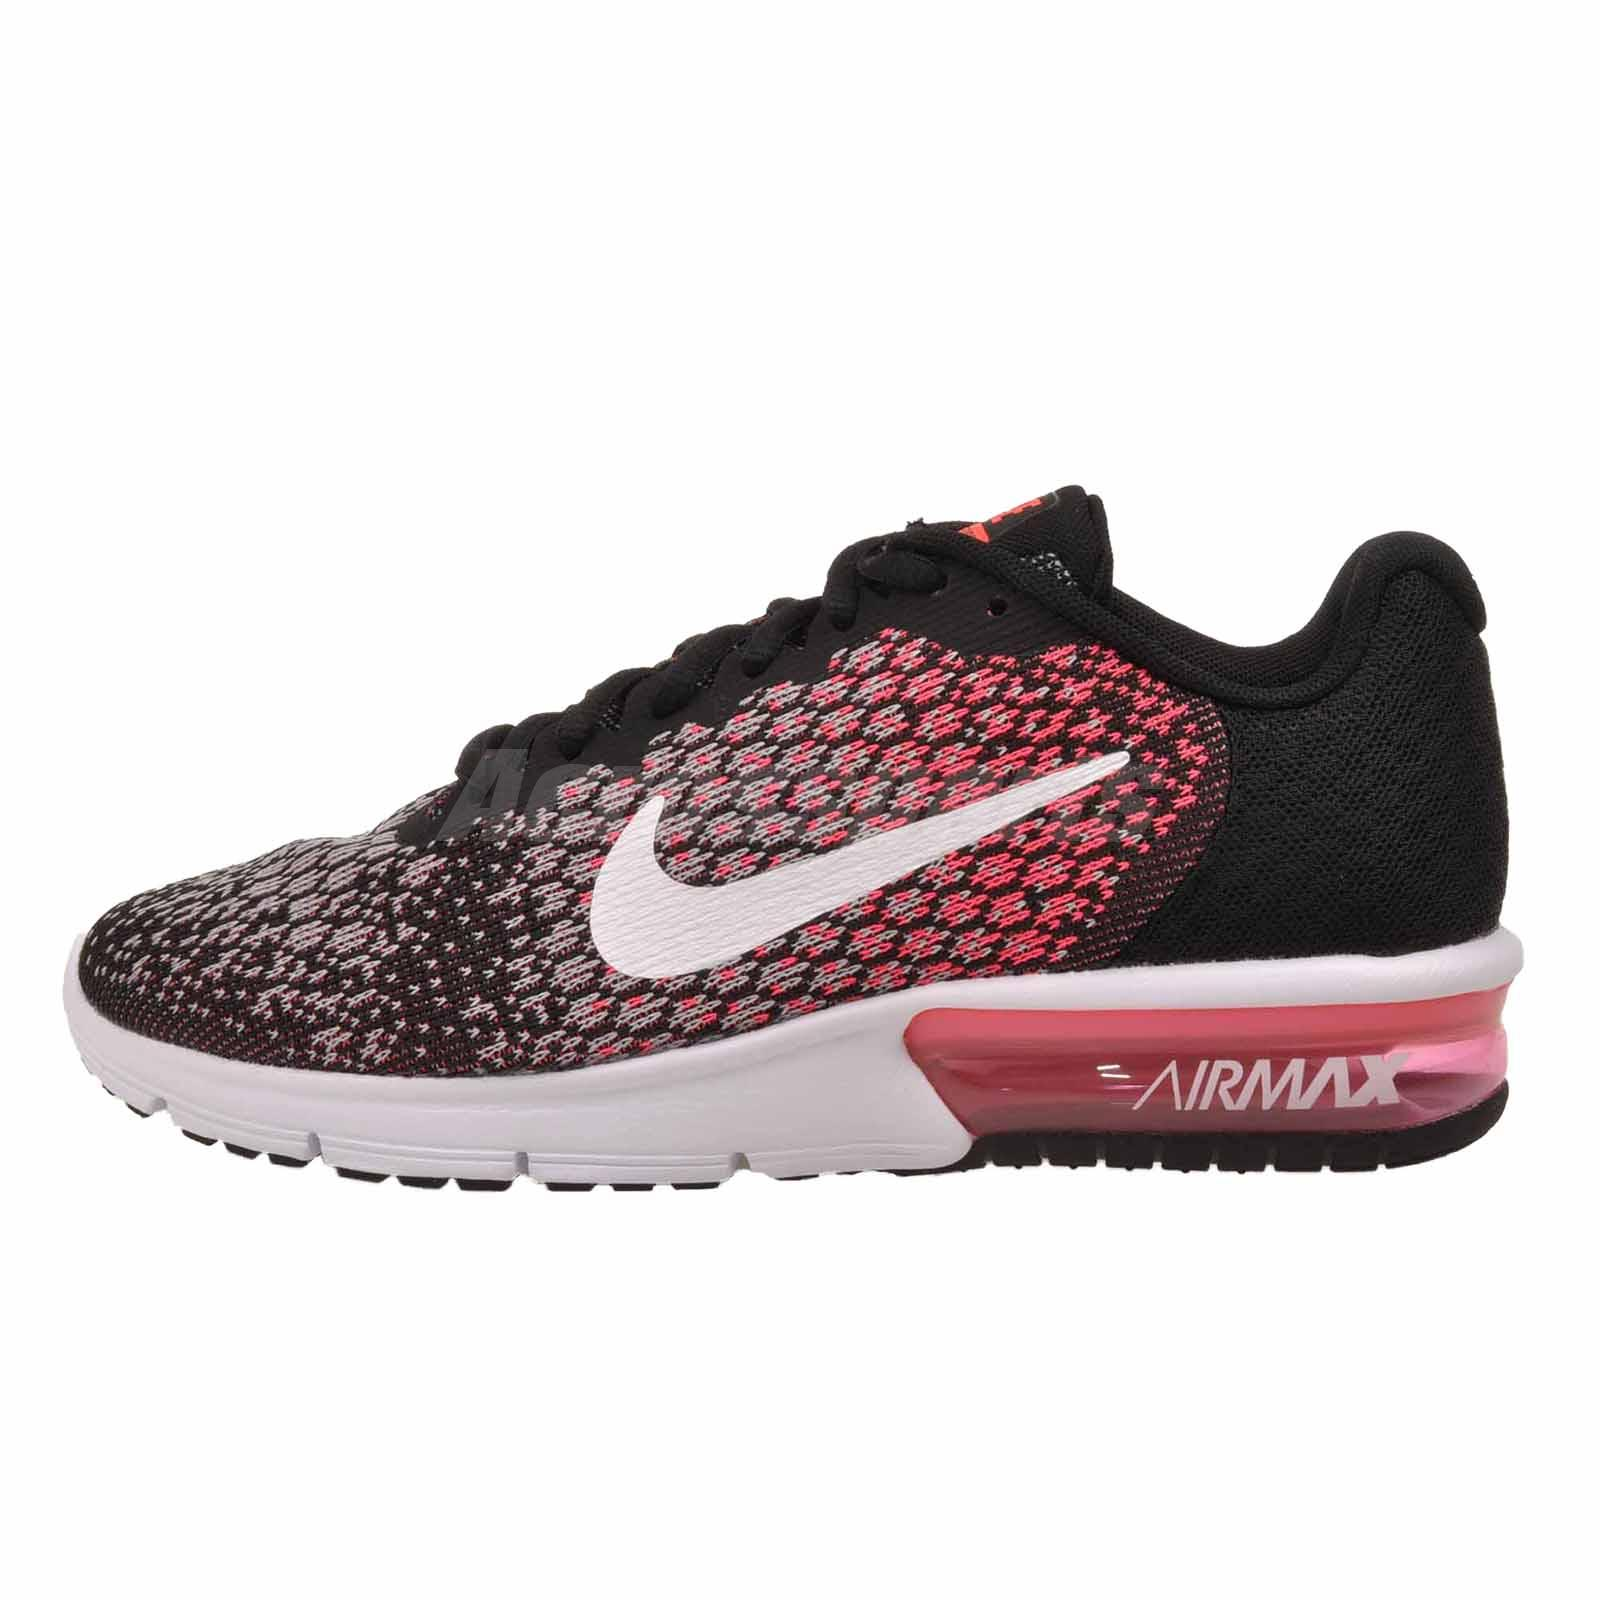 Nike Wmns Air Max Sequent 2 Running Womens Shoes Black Pink 852465 ... 80aa4fbc8c74